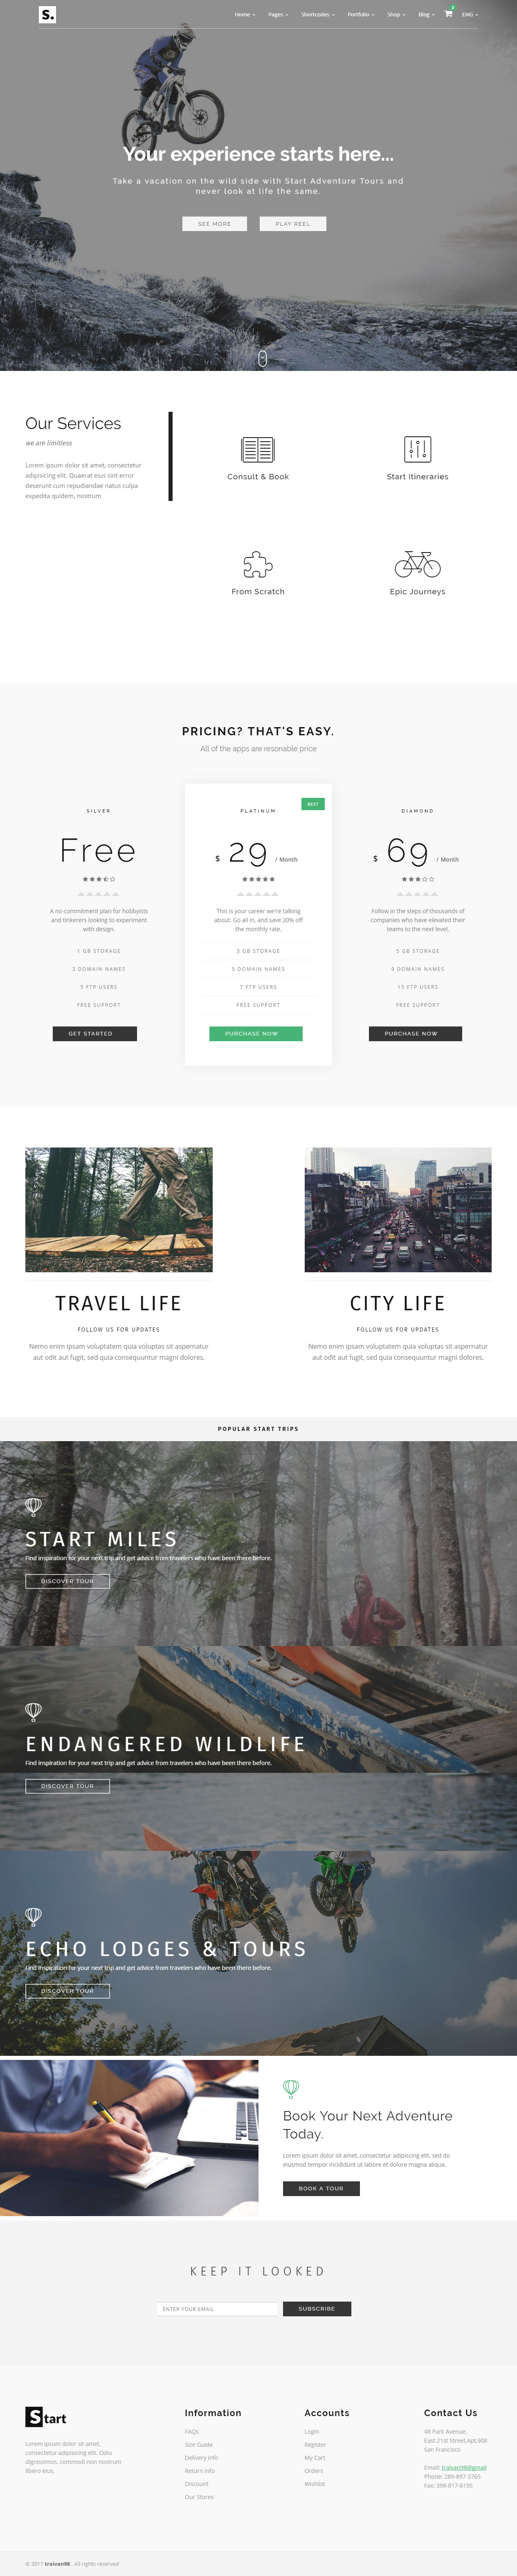 25+ Best Travel HTML5 Templates 2017 - Responsive Miracle